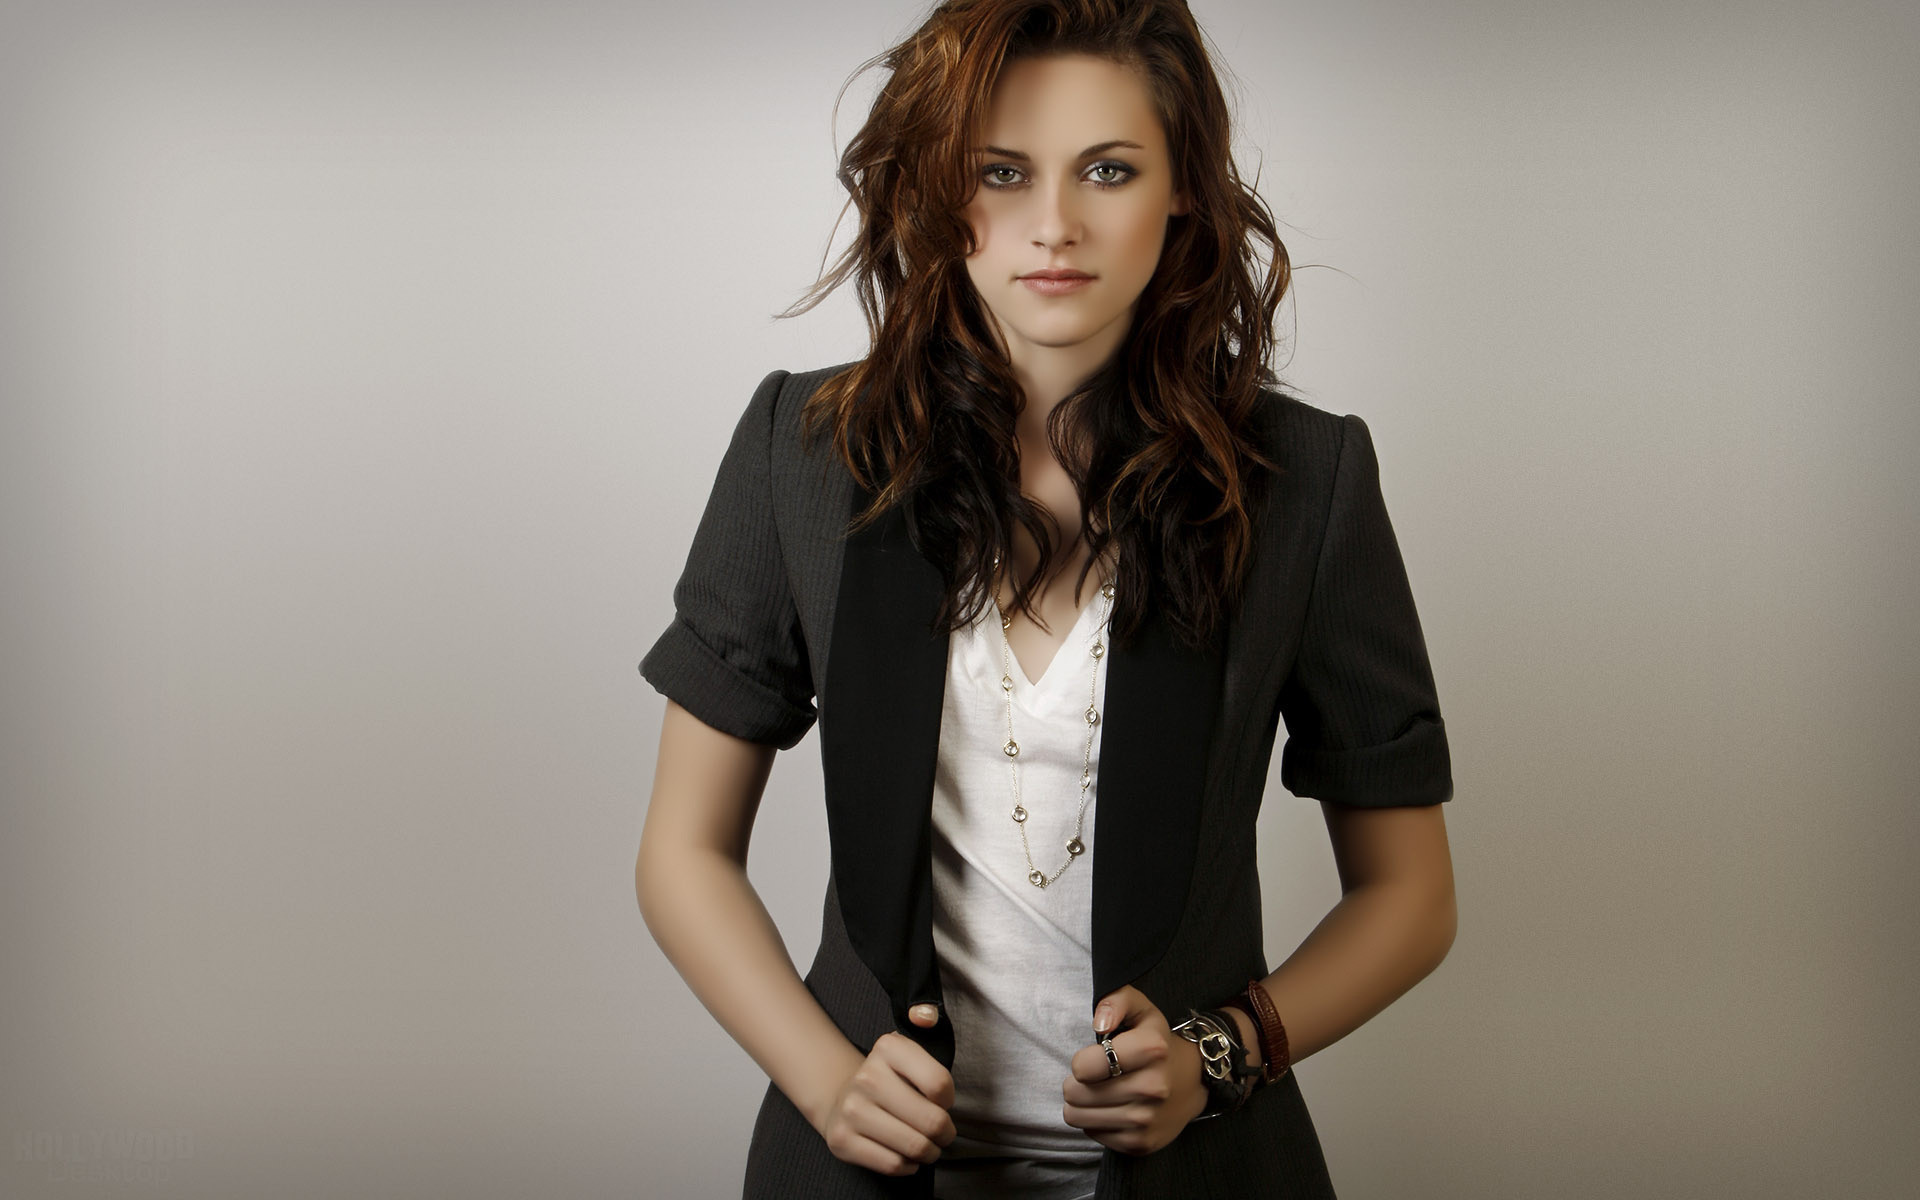 Res: 1920x1200, Kristen Stewart Widescreen Wallpaper